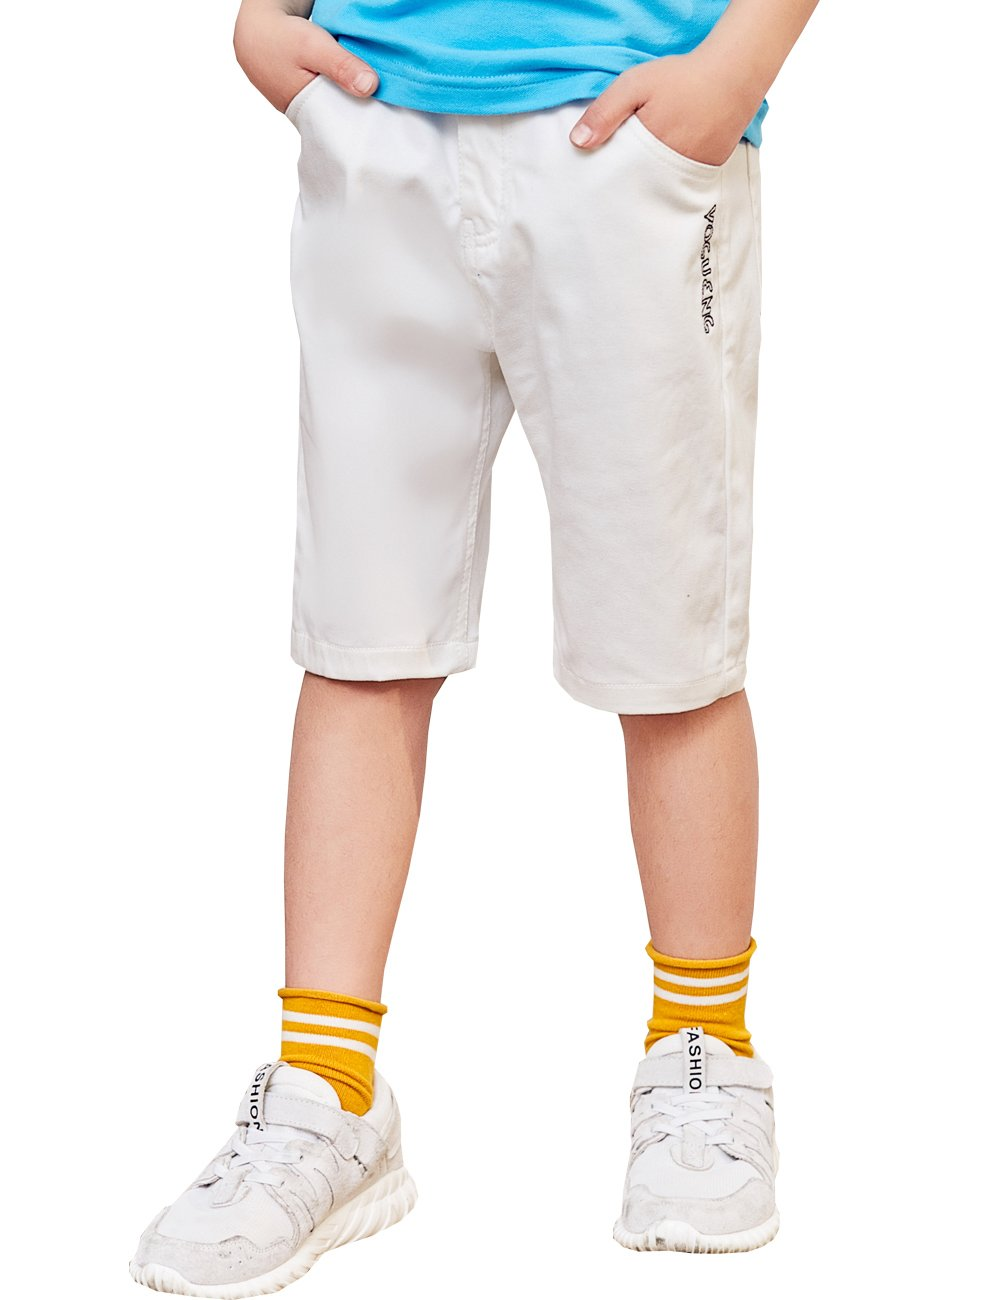 BYCR Boys' Solid Color Cotton Elastic Waist Shorts for Kids No. 9182100012 (140 (US Size 8), White)